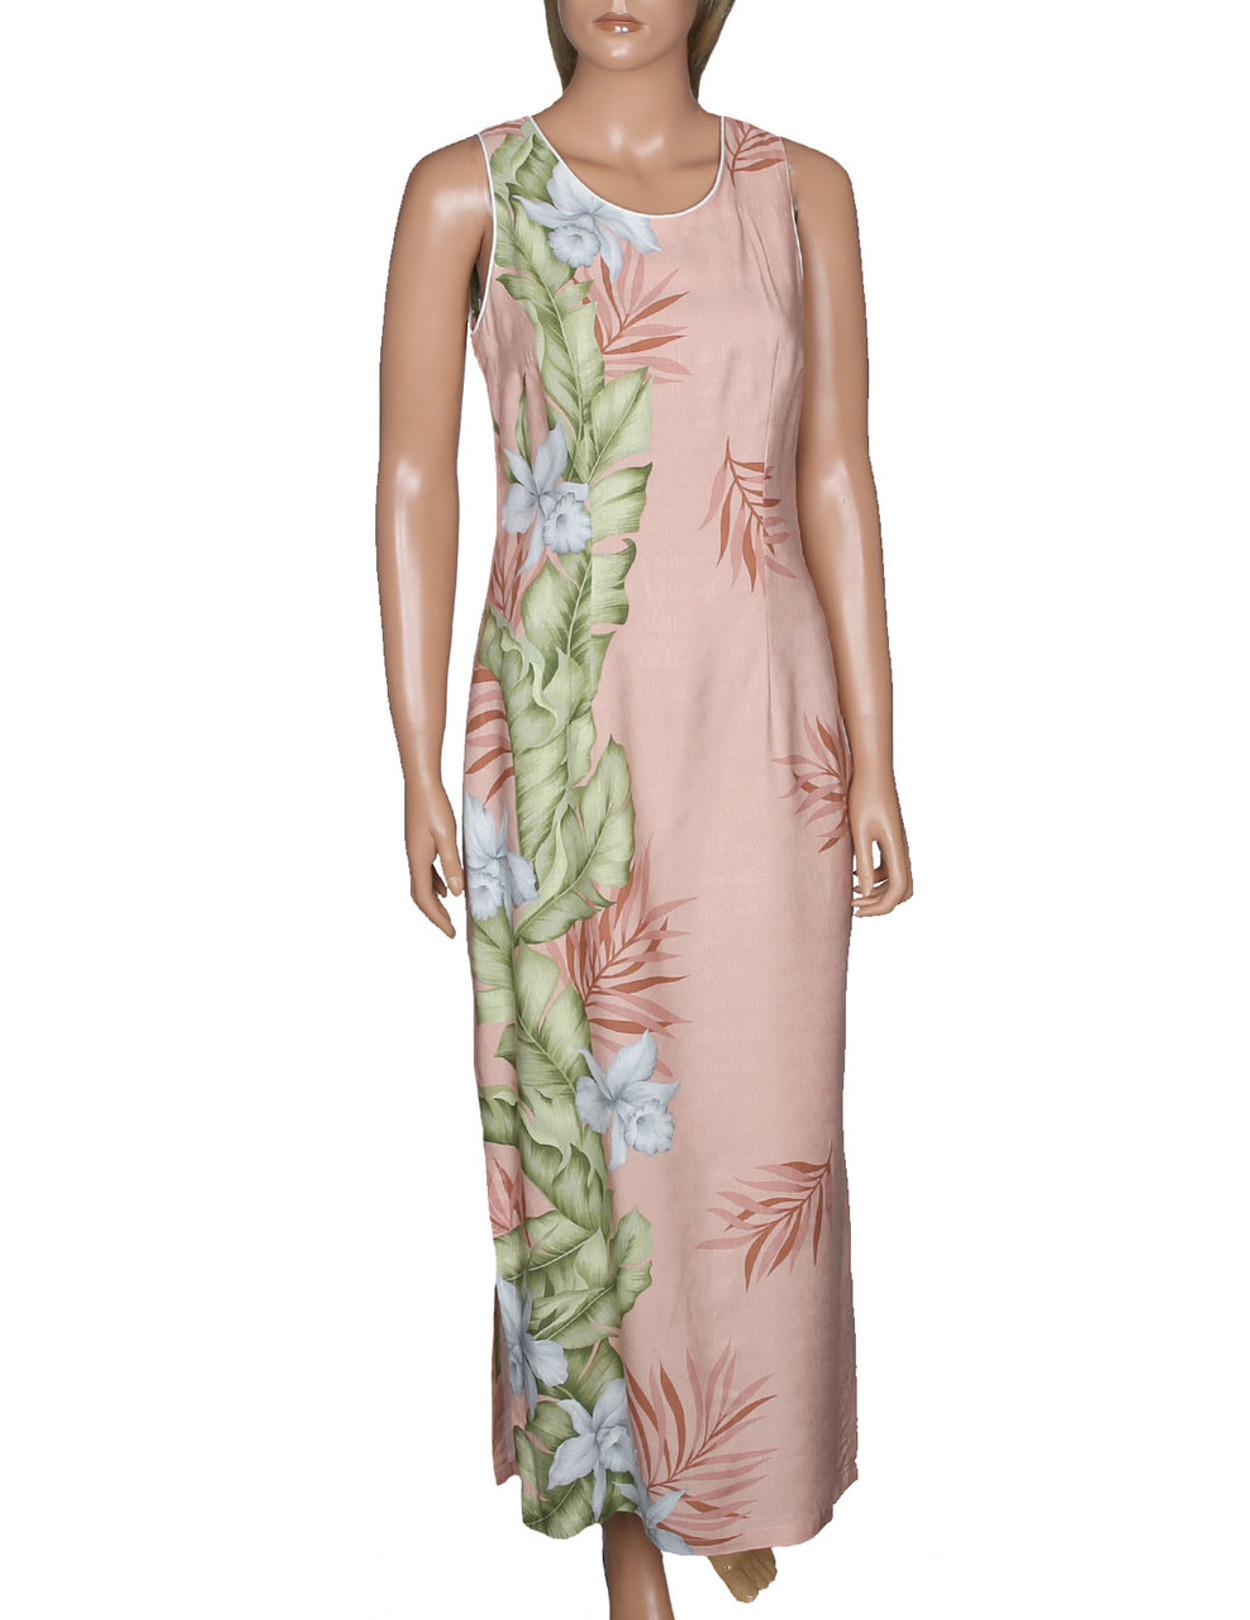 Maxi Long Cocktail Floral Dress White Orchids - Hawaiian Wedding Place